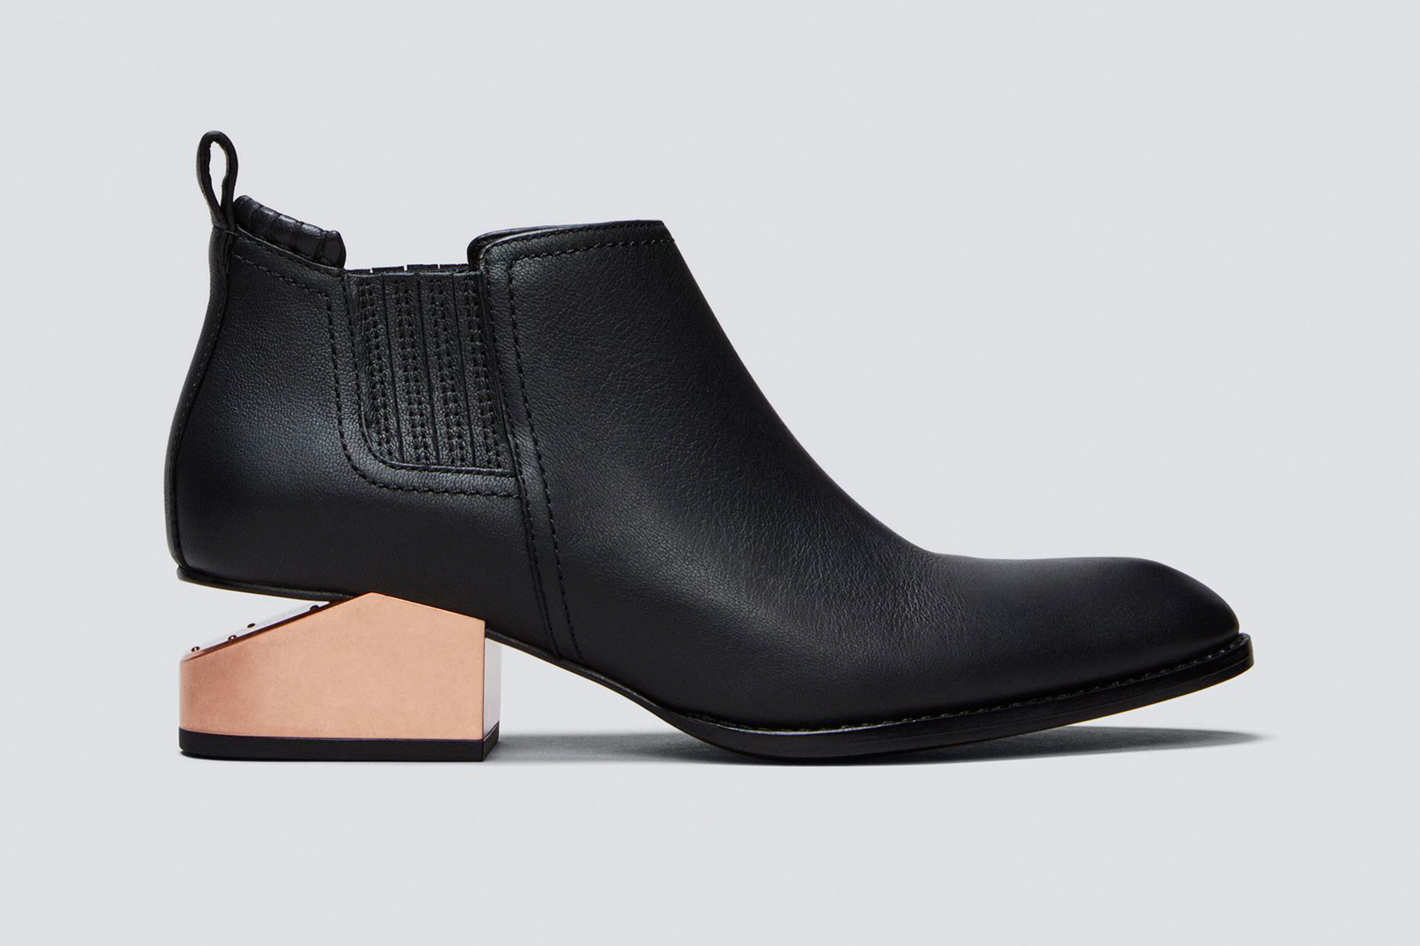 Alexander Wang Kori Oxford with Rose Gold Heel